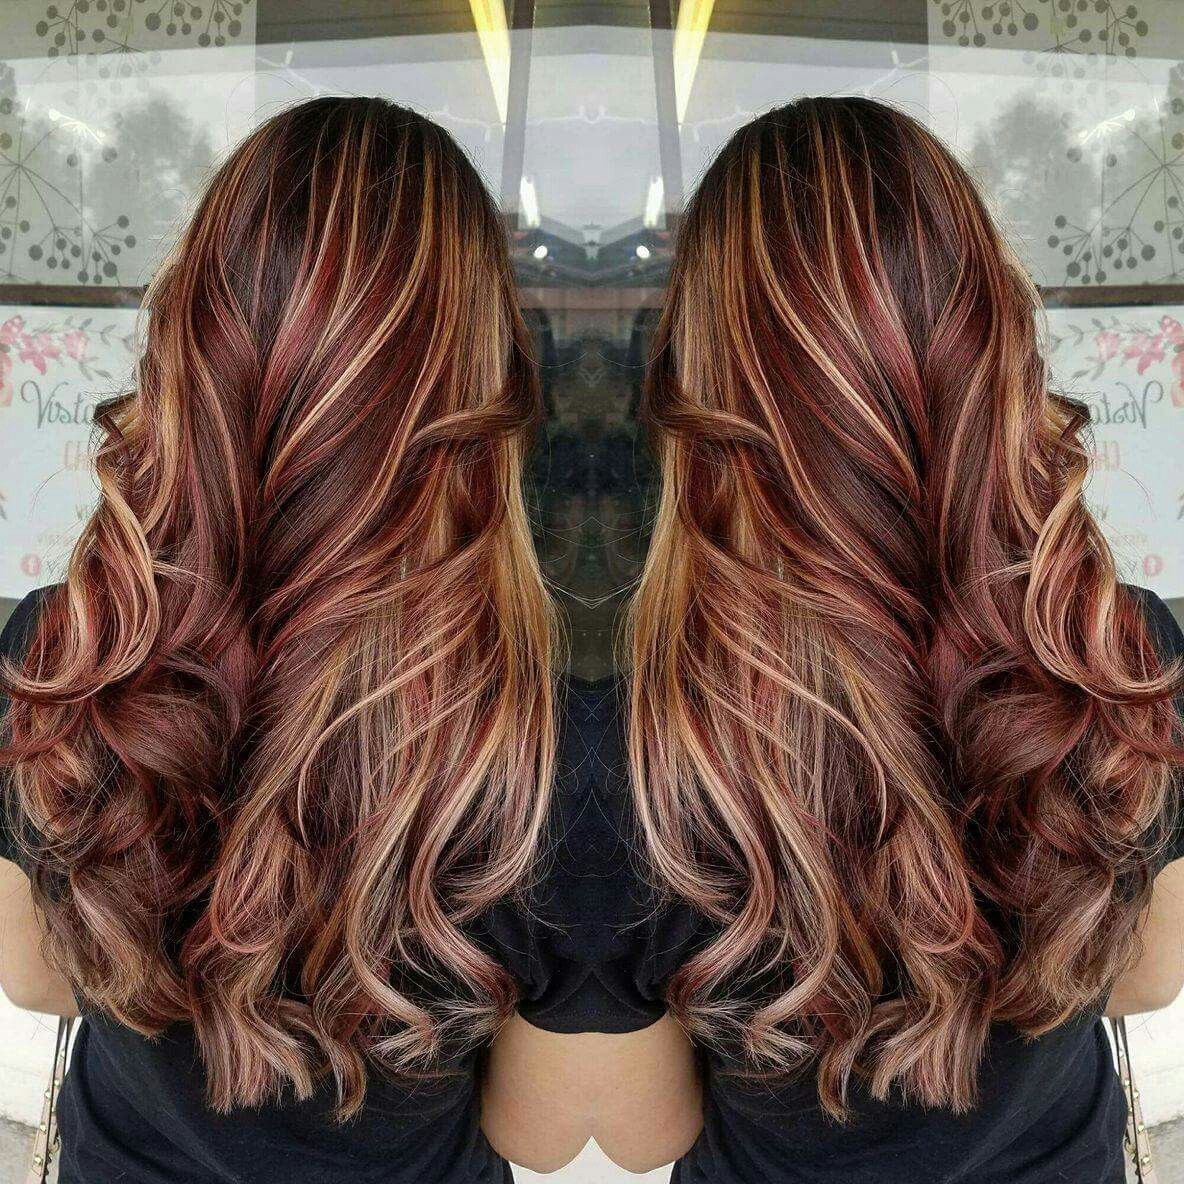 Red Hair Balayage Brown Hair Blonde Highlights Contrast Long Hair Curls Vista Red Highlights In Brown Hair Brown Hair With Blonde Highlights Hair Styles